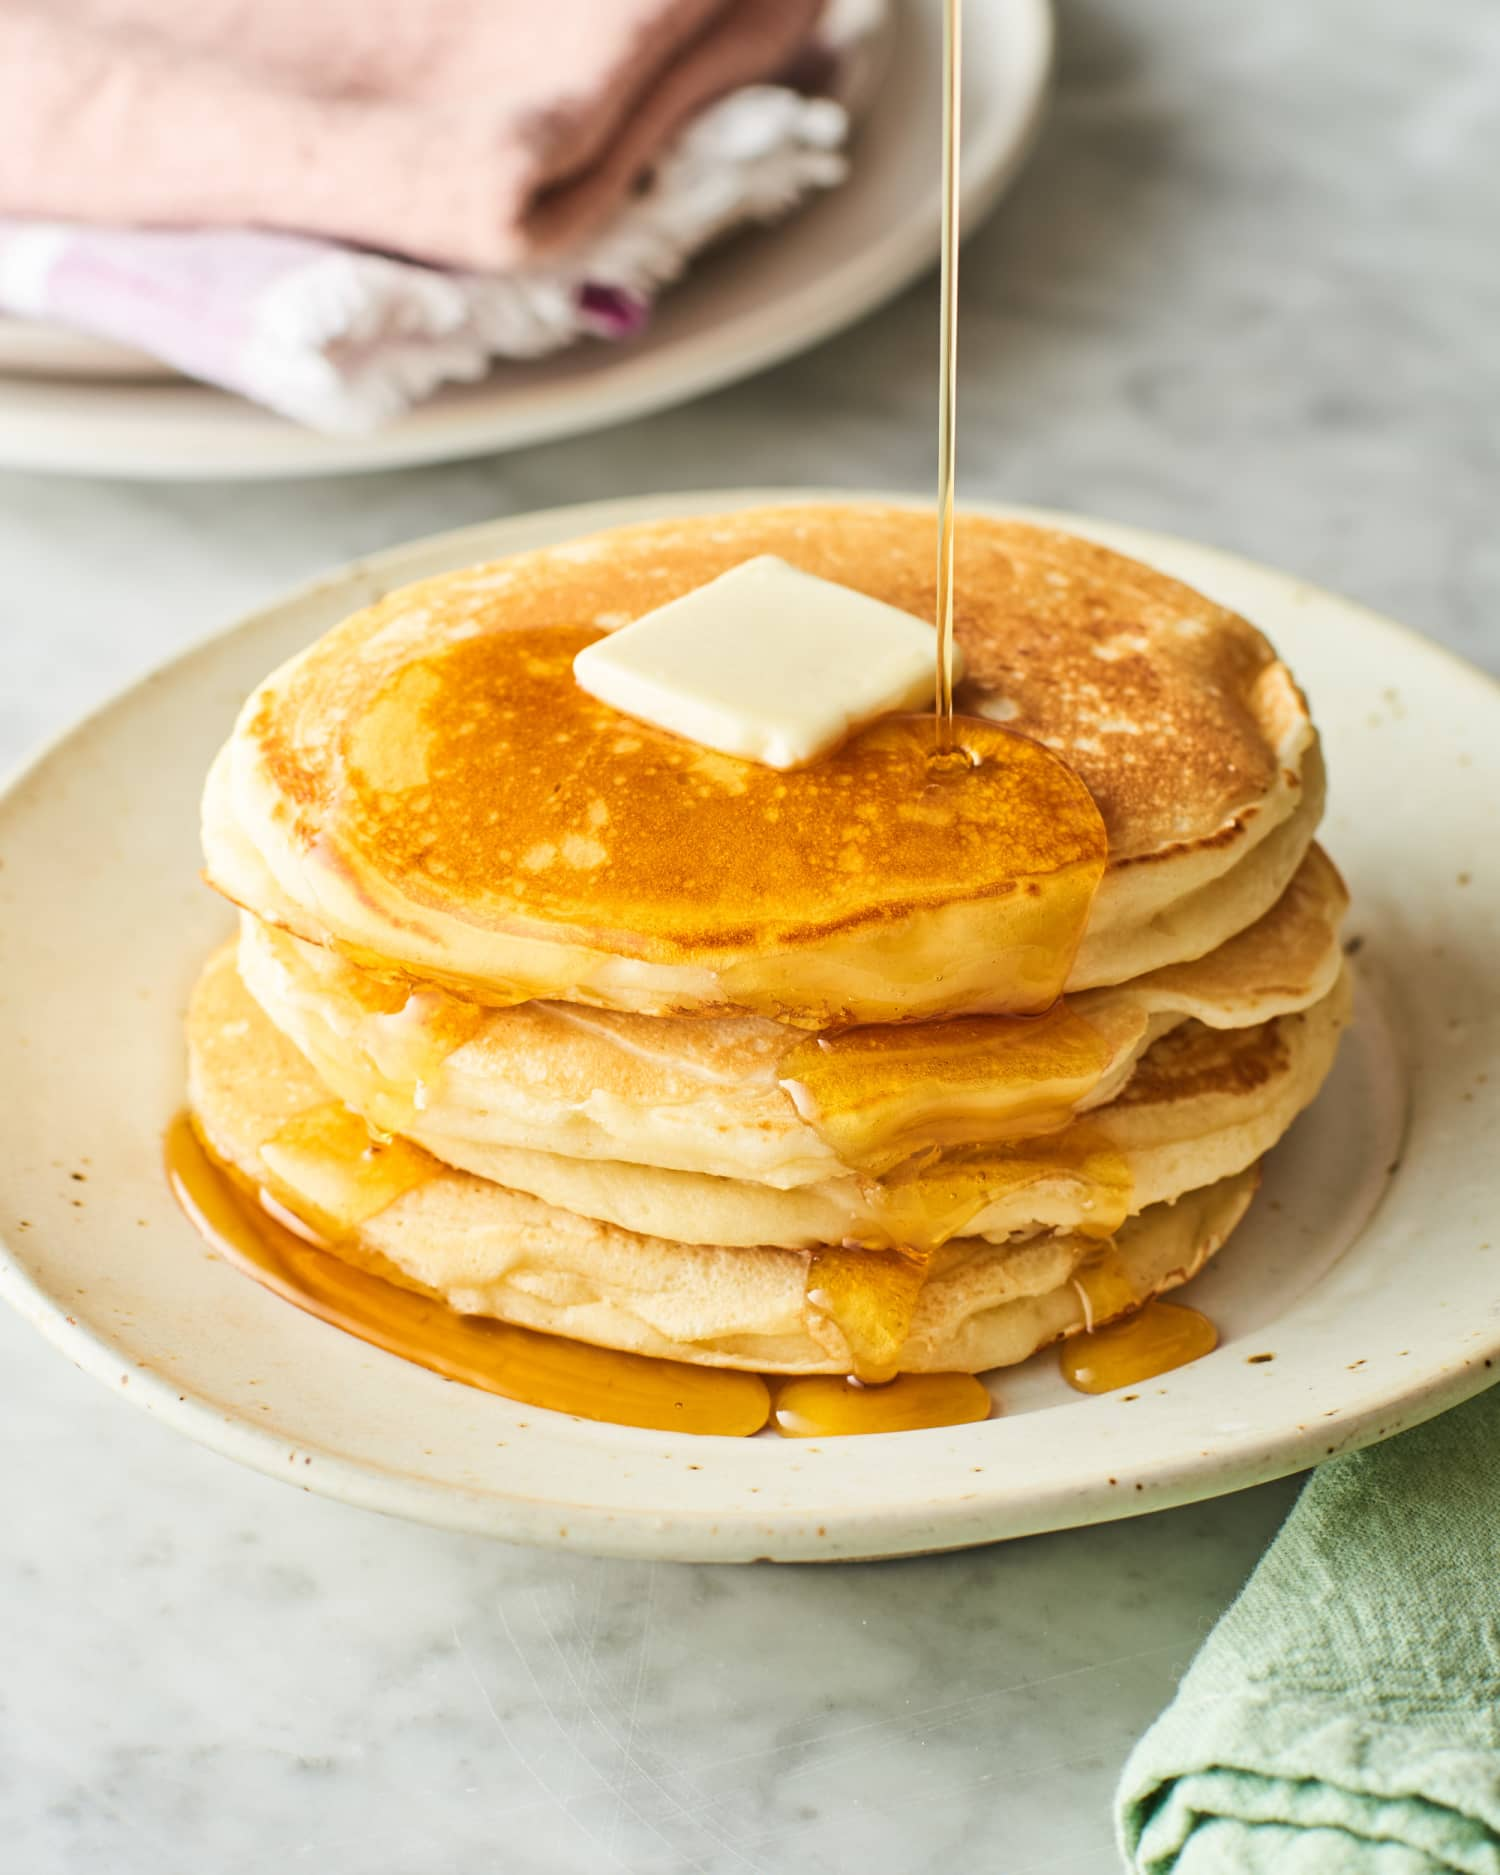 The $2 Ingredient That Makes Buttermilk Pancakes *Much* Better